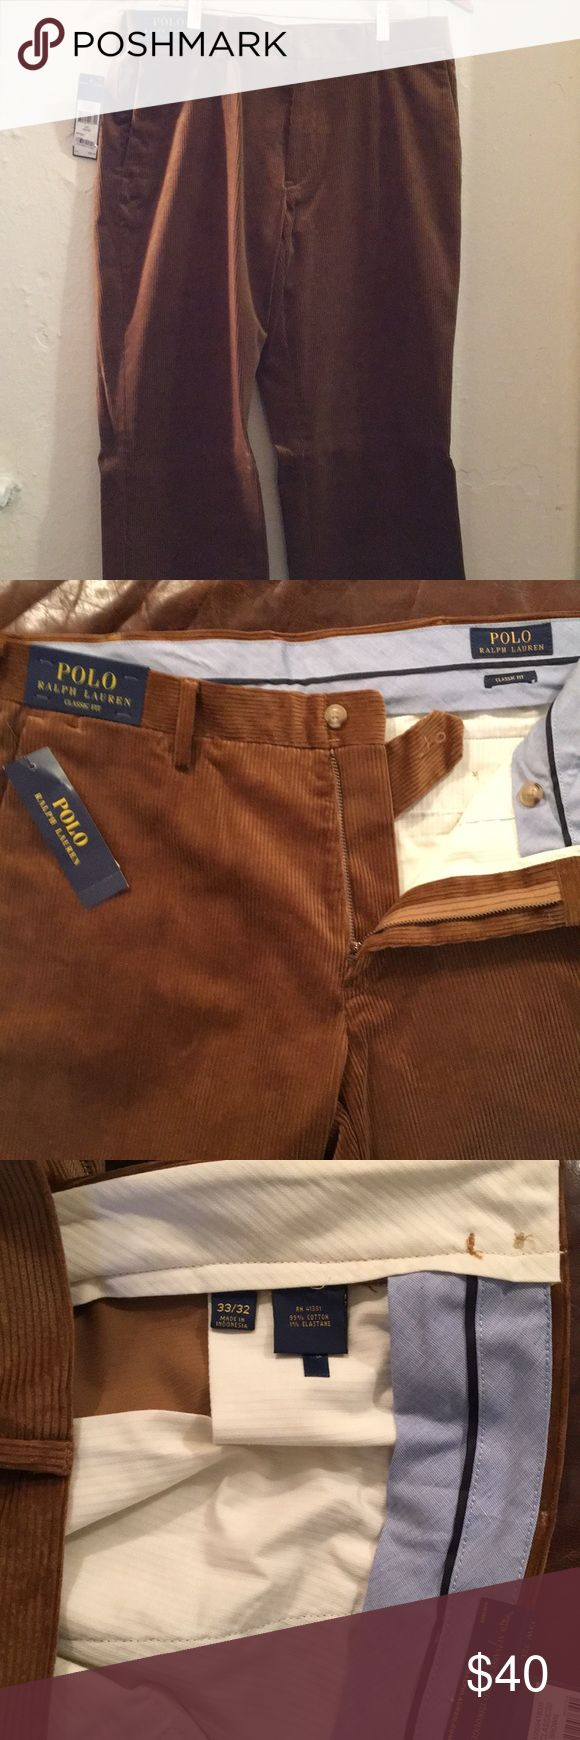 🍍 Polo Ralph Lauren Mens Corduroy Pants 🍍 Great pair of pants!! These are a rusty brown color that would go great with a checkered button down and a khaki coat on top! Brand new with tags still on them!  Size is 33/32!! Polo by Ralph Lauren Pants Corduroy